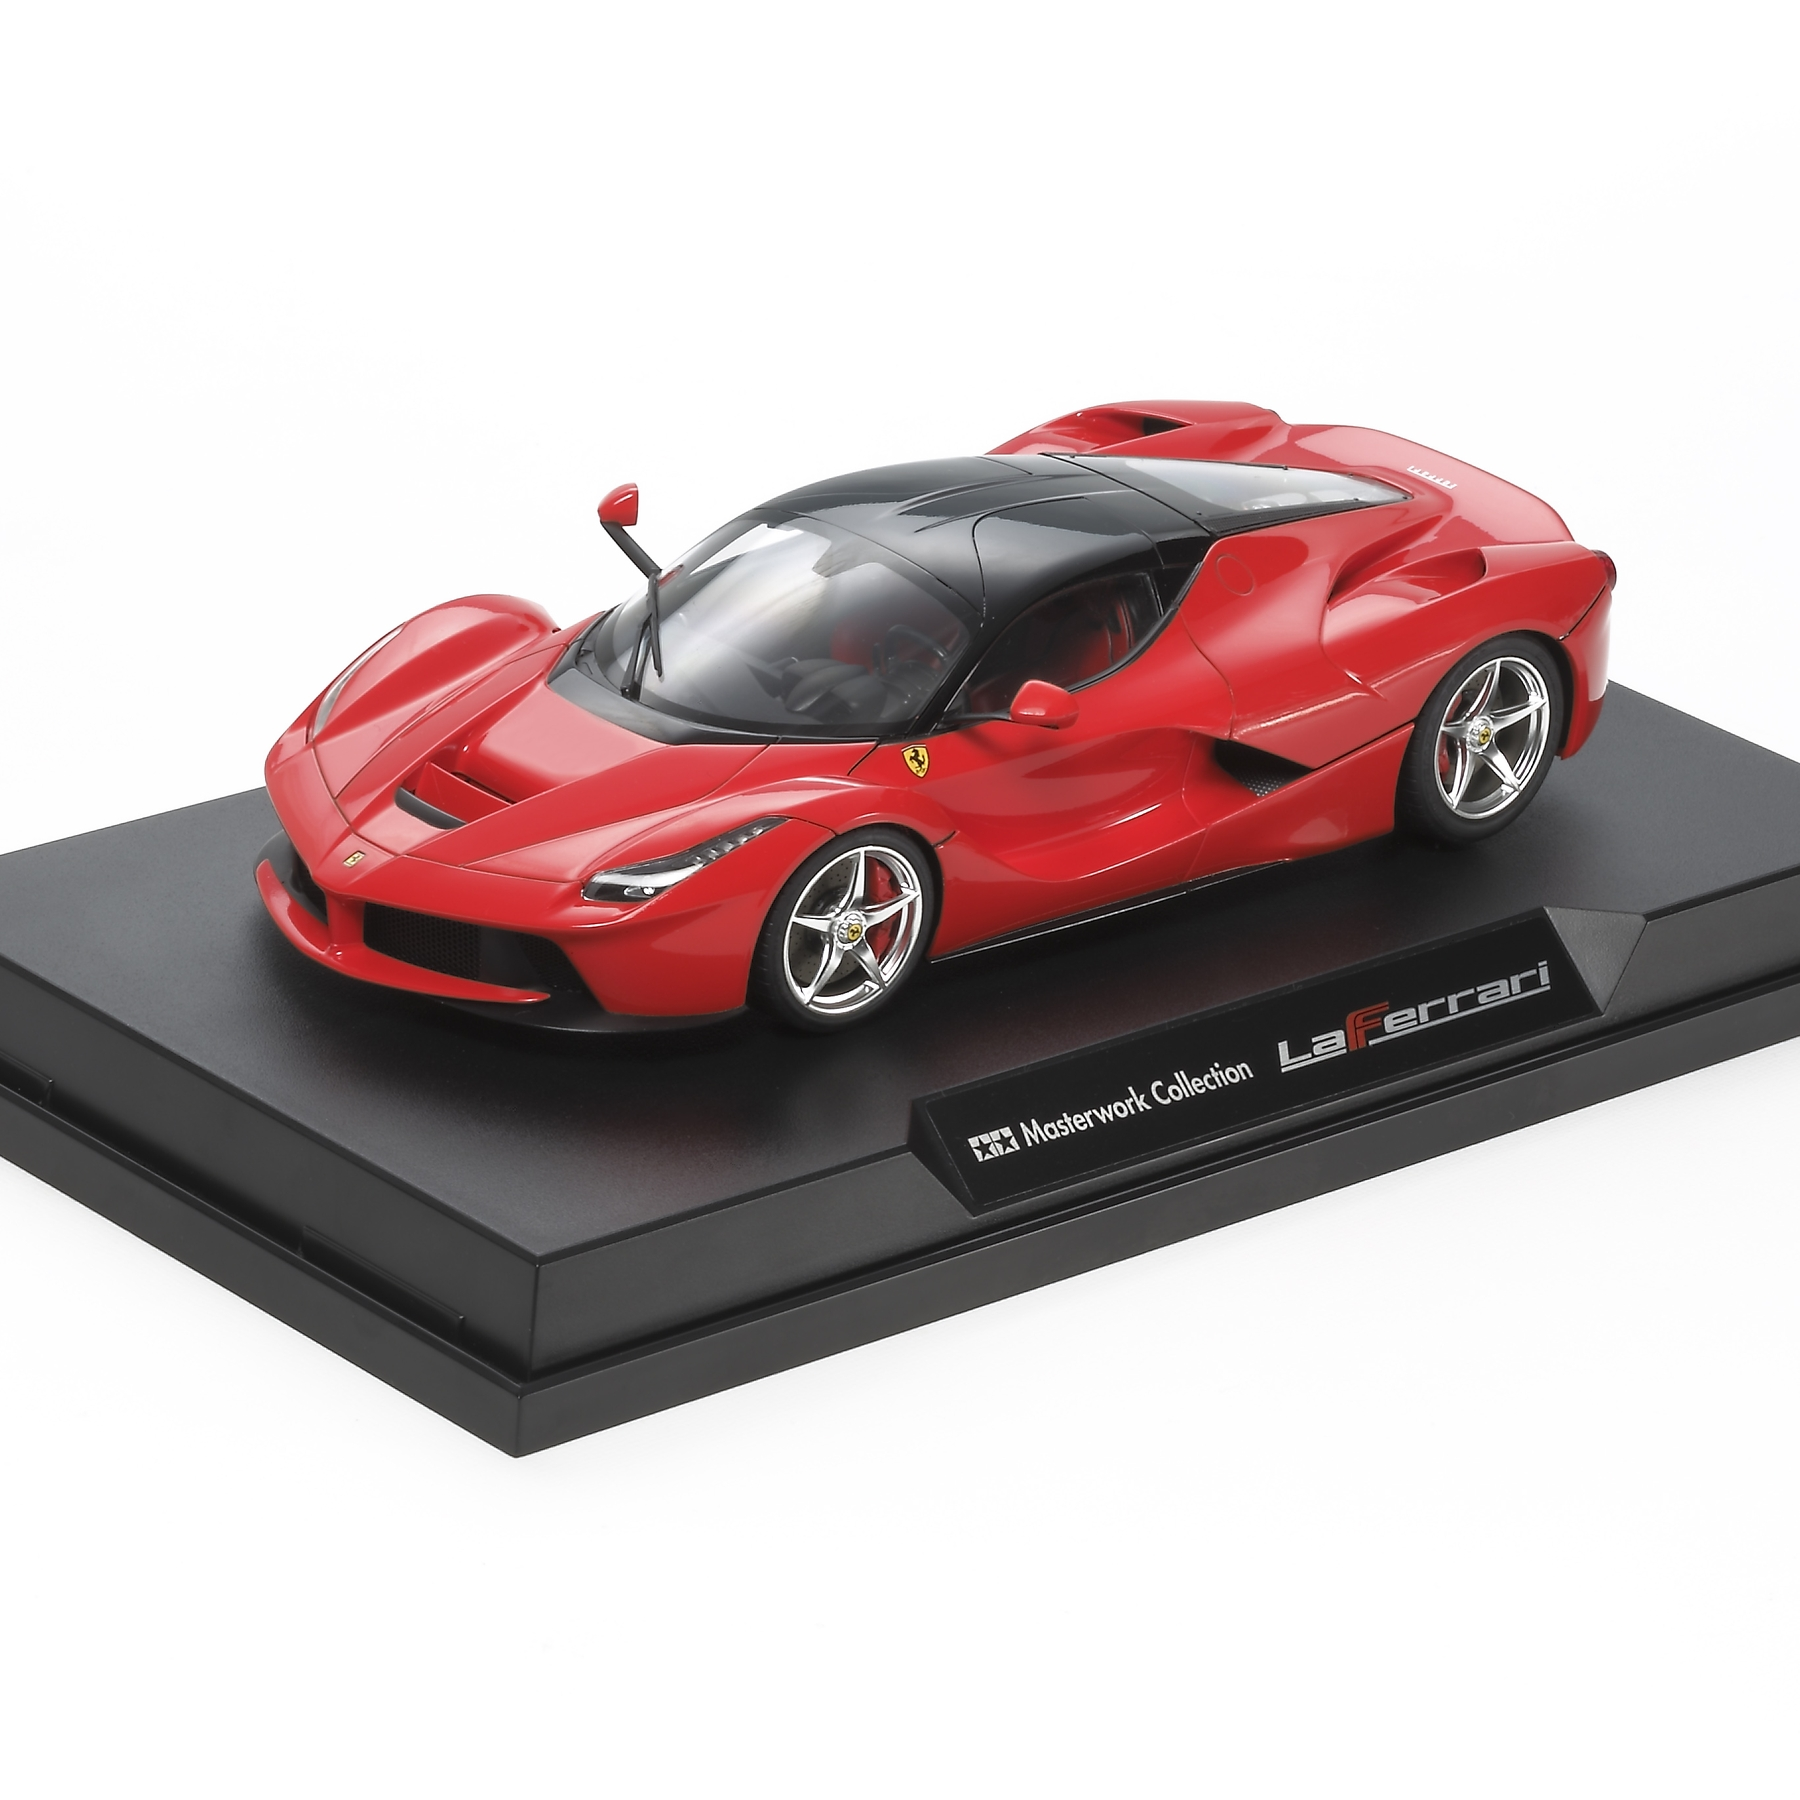 1/24 Laferrari (Red)